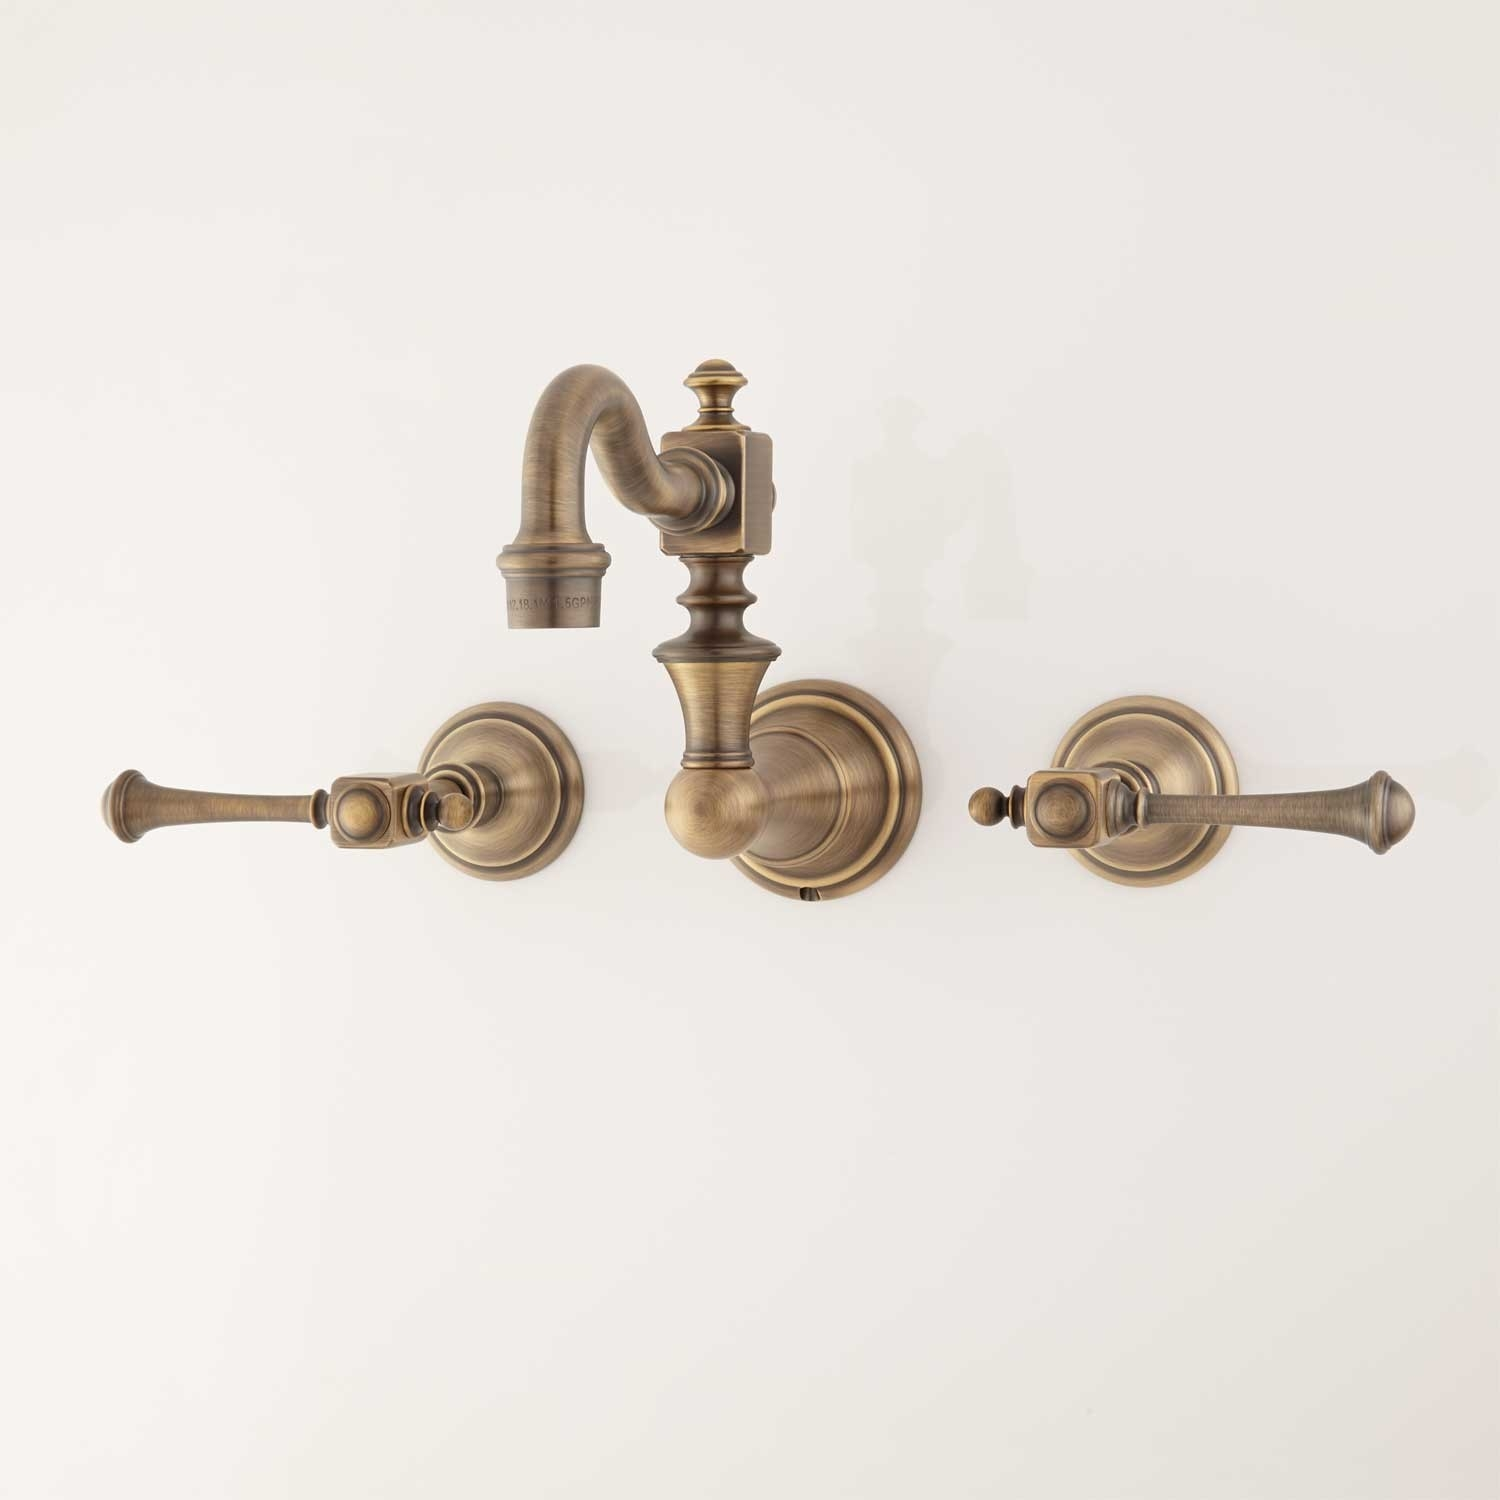 Ideas, vintage wall mount kitchen sink faucets vintage wall mount kitchen sink faucets wall mount kitchen faucets signature hardware 1500 x 1500  .